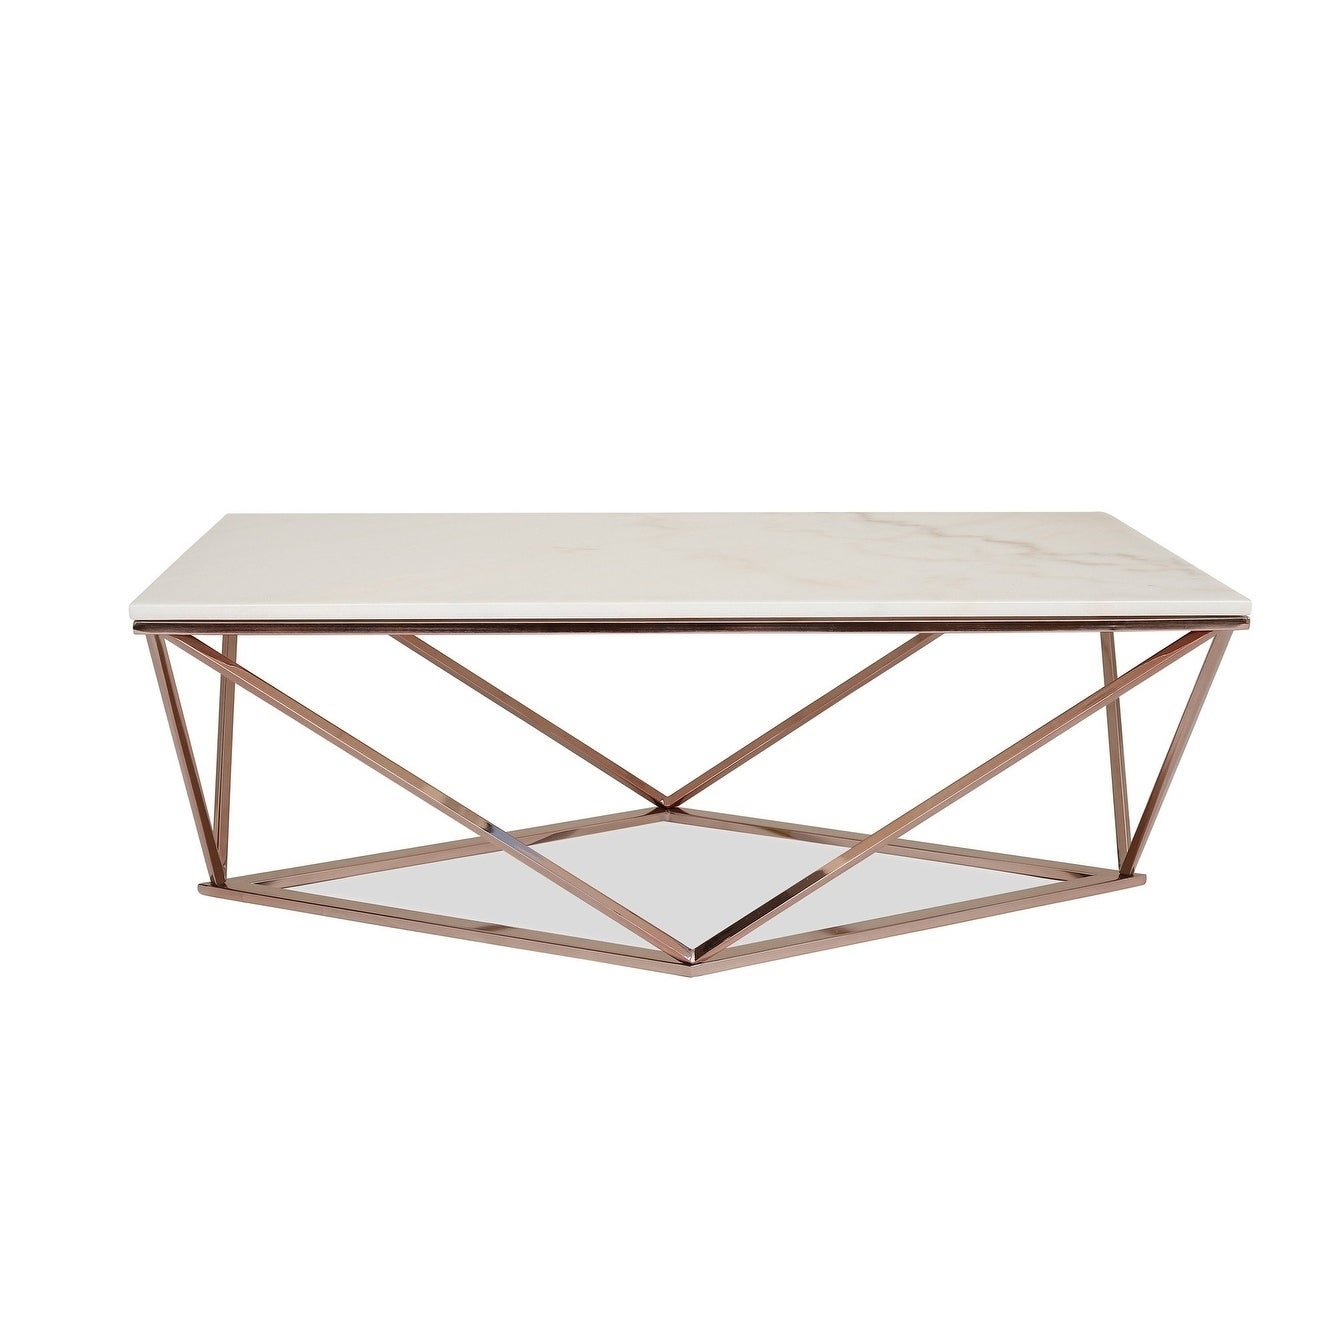 Shop whitney white marble coffee table modern gold coffee tables for living room rose gold free shipping today overstock com 21485041